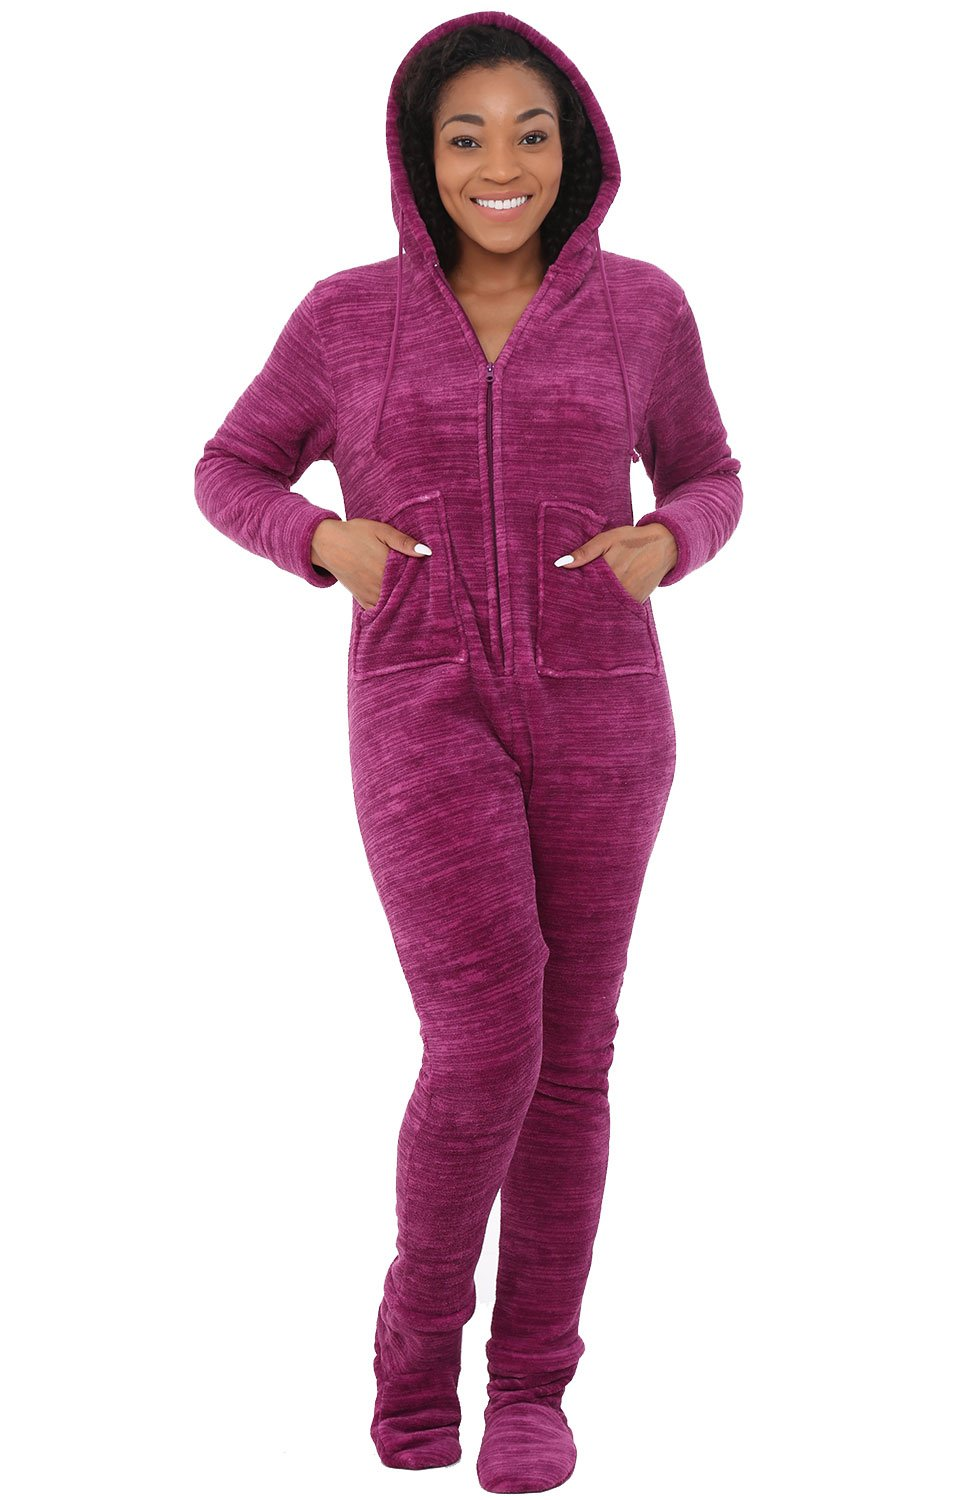 Alexander Del Rossa Womens Fleece Onesie, Hooded Footed Jumpsuit Pajamas, Large Textured Raspberry (A0322HRBLG)